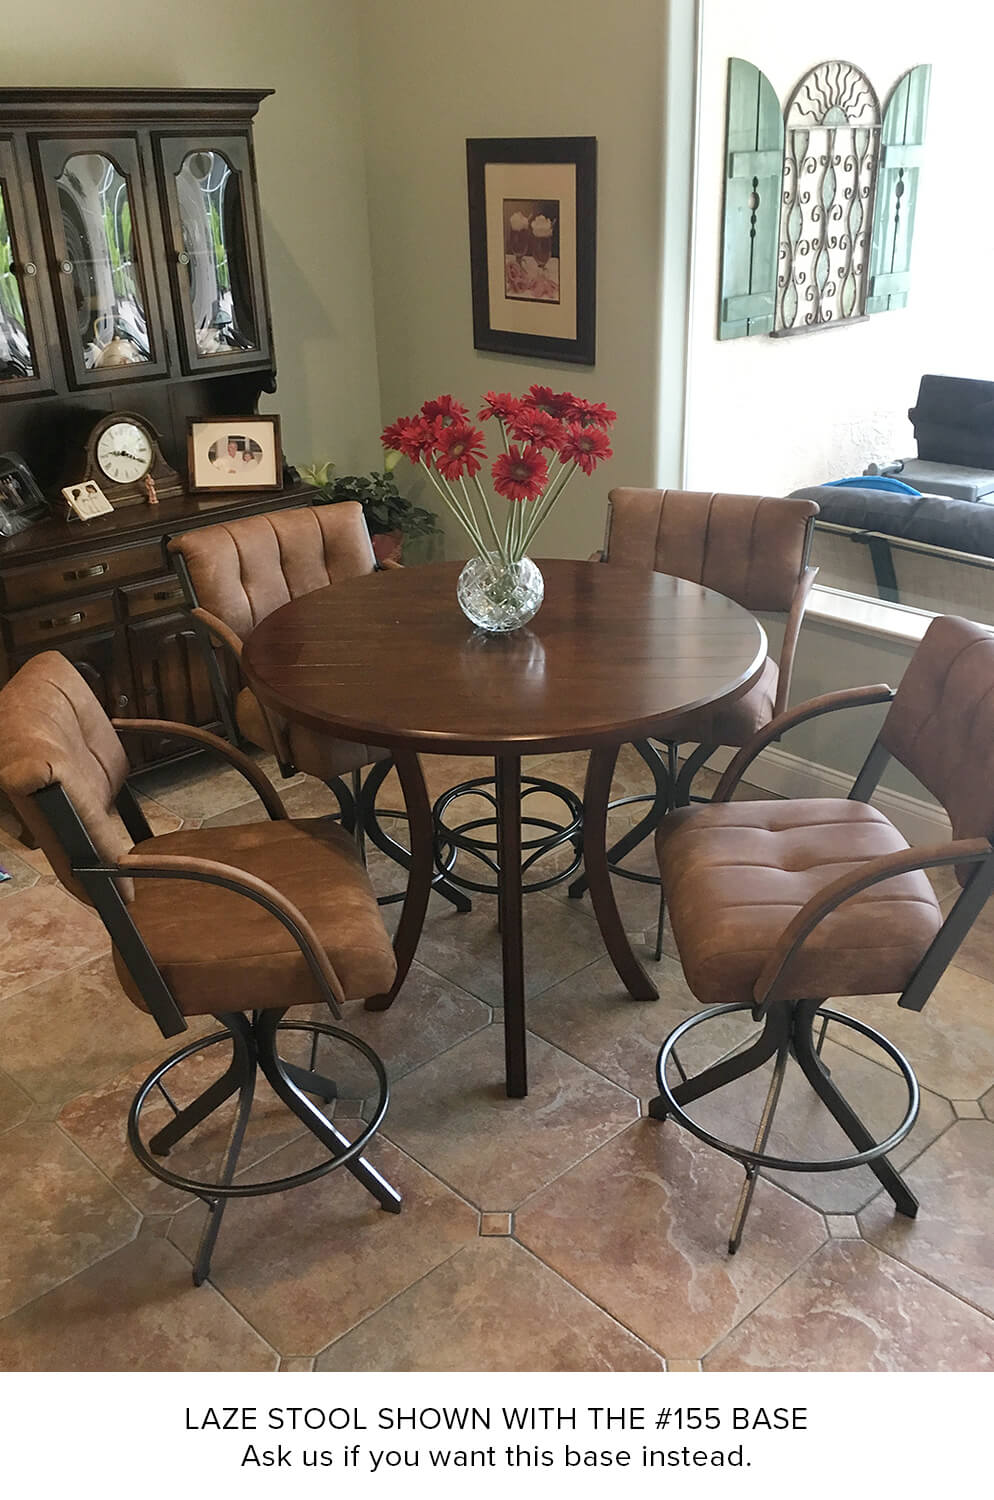 Lisa furnitures laze brown swivel barstools with arms around pub table in traditional dining room